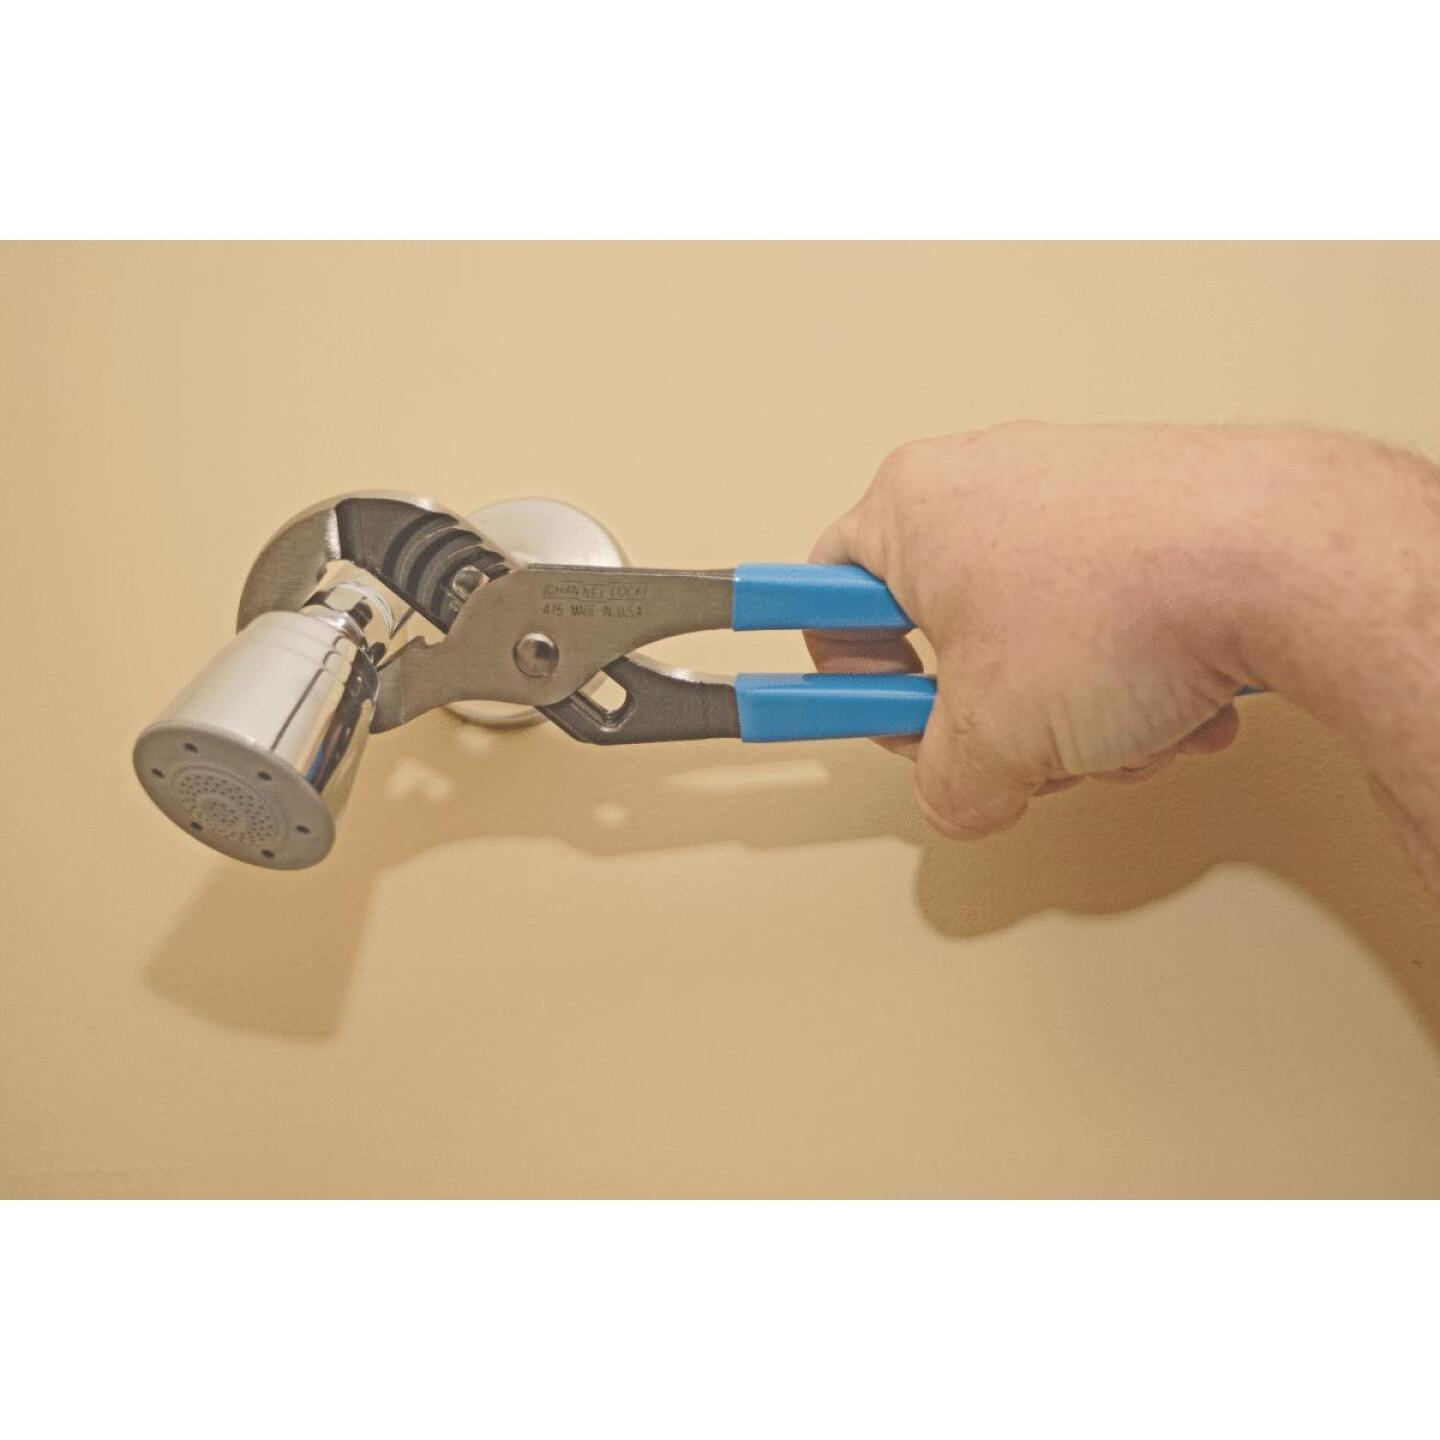 Channellock 10 In. Smooth Jaw Groove Joint Pliers Image 2